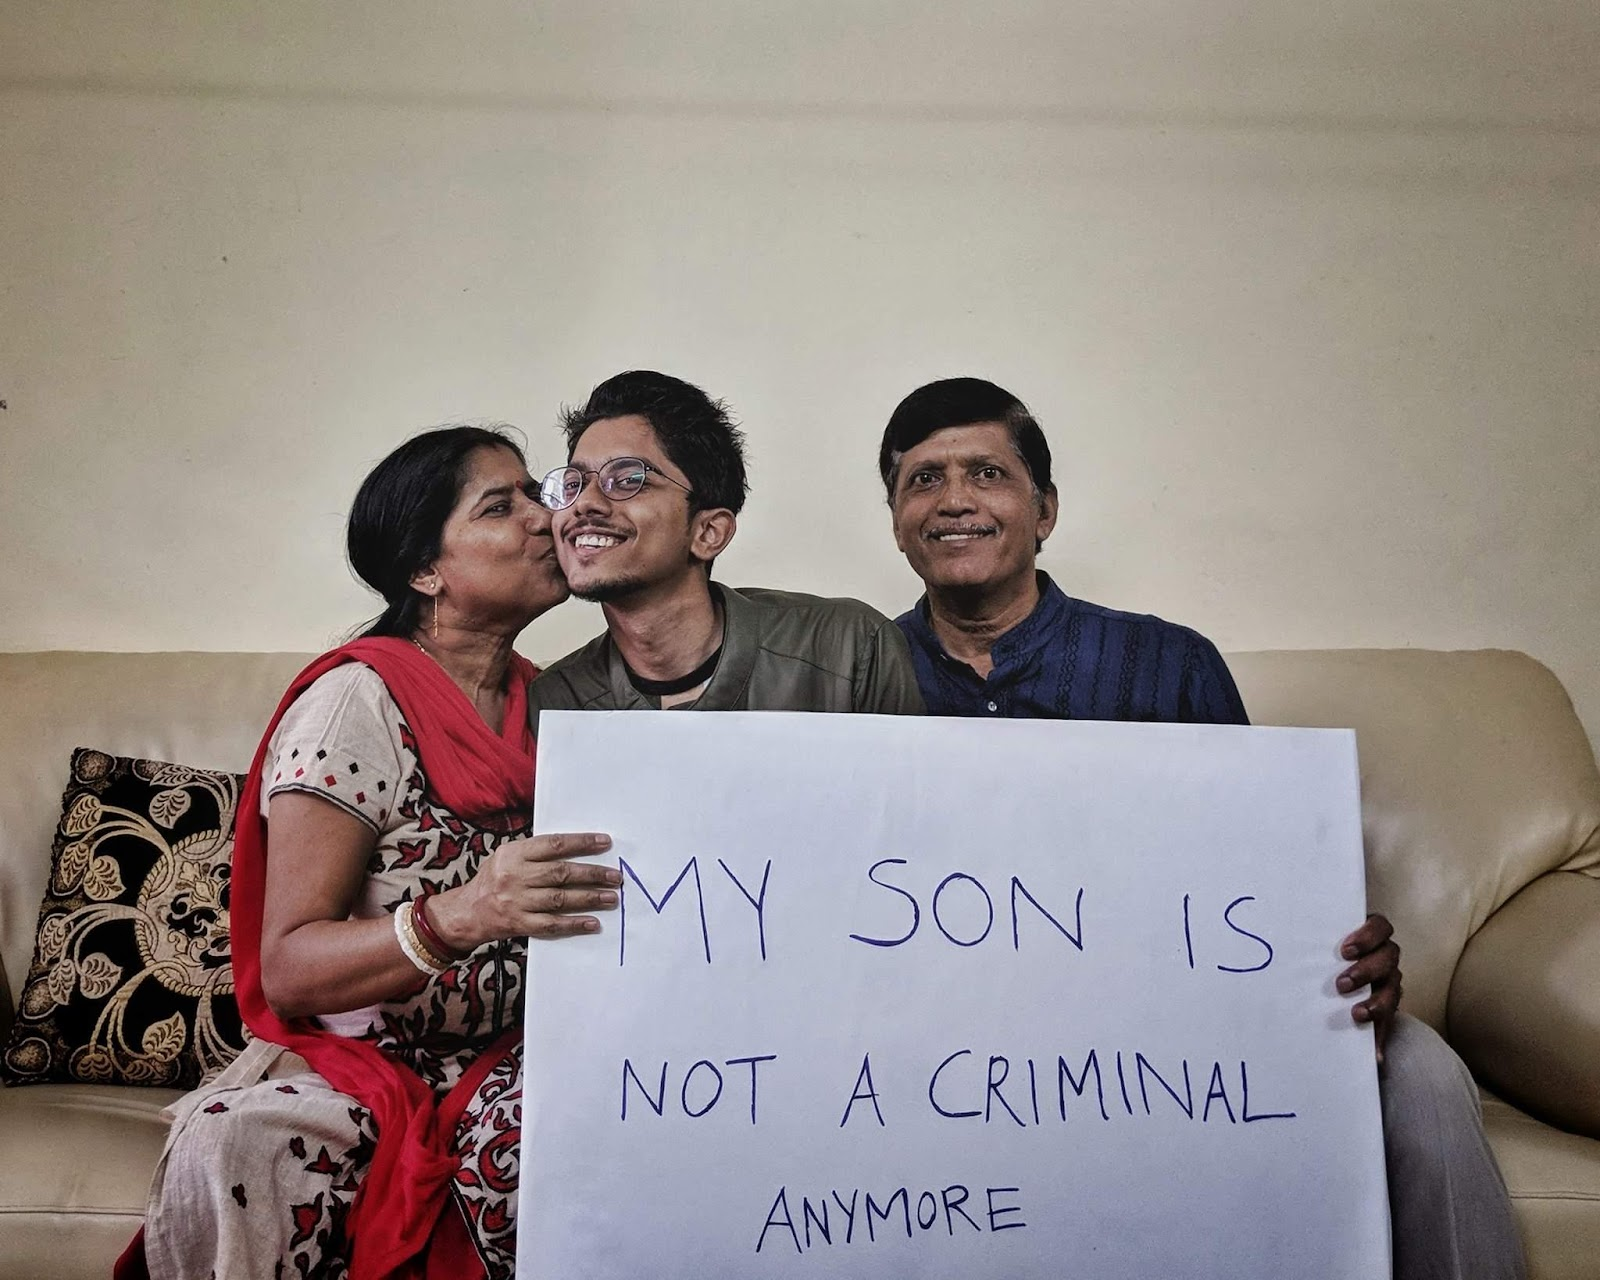 Sec 377 - LGBT community. My son is not a criminal anymore says ...